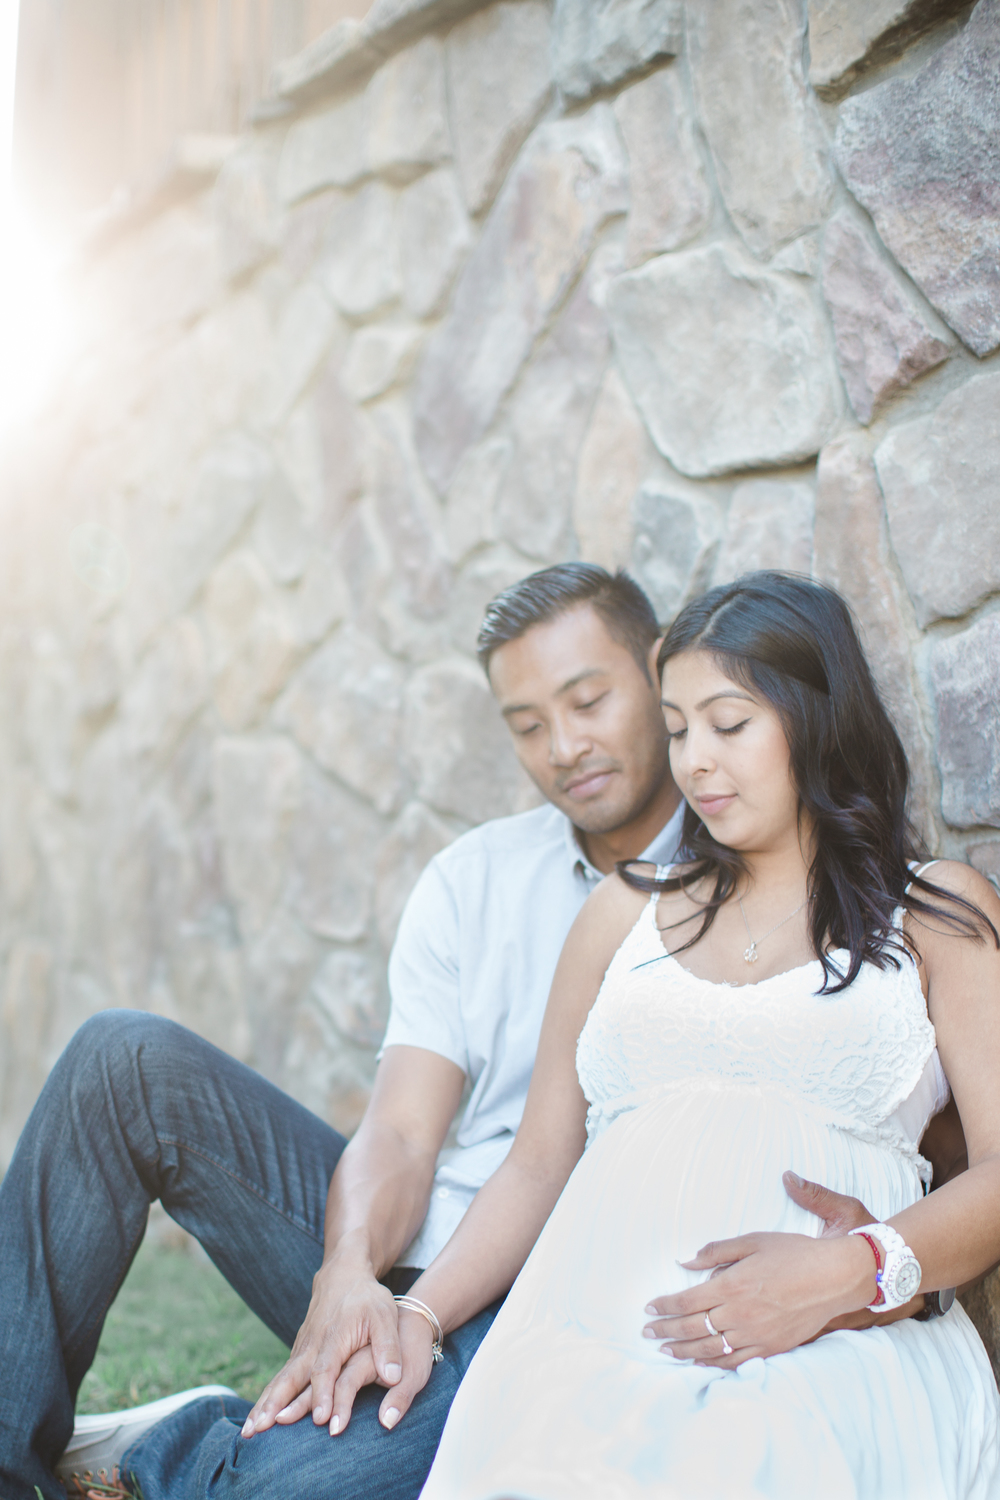 Marcella_Maternity_Cerritos_BrandonJFerlin_Photography-45.jpg